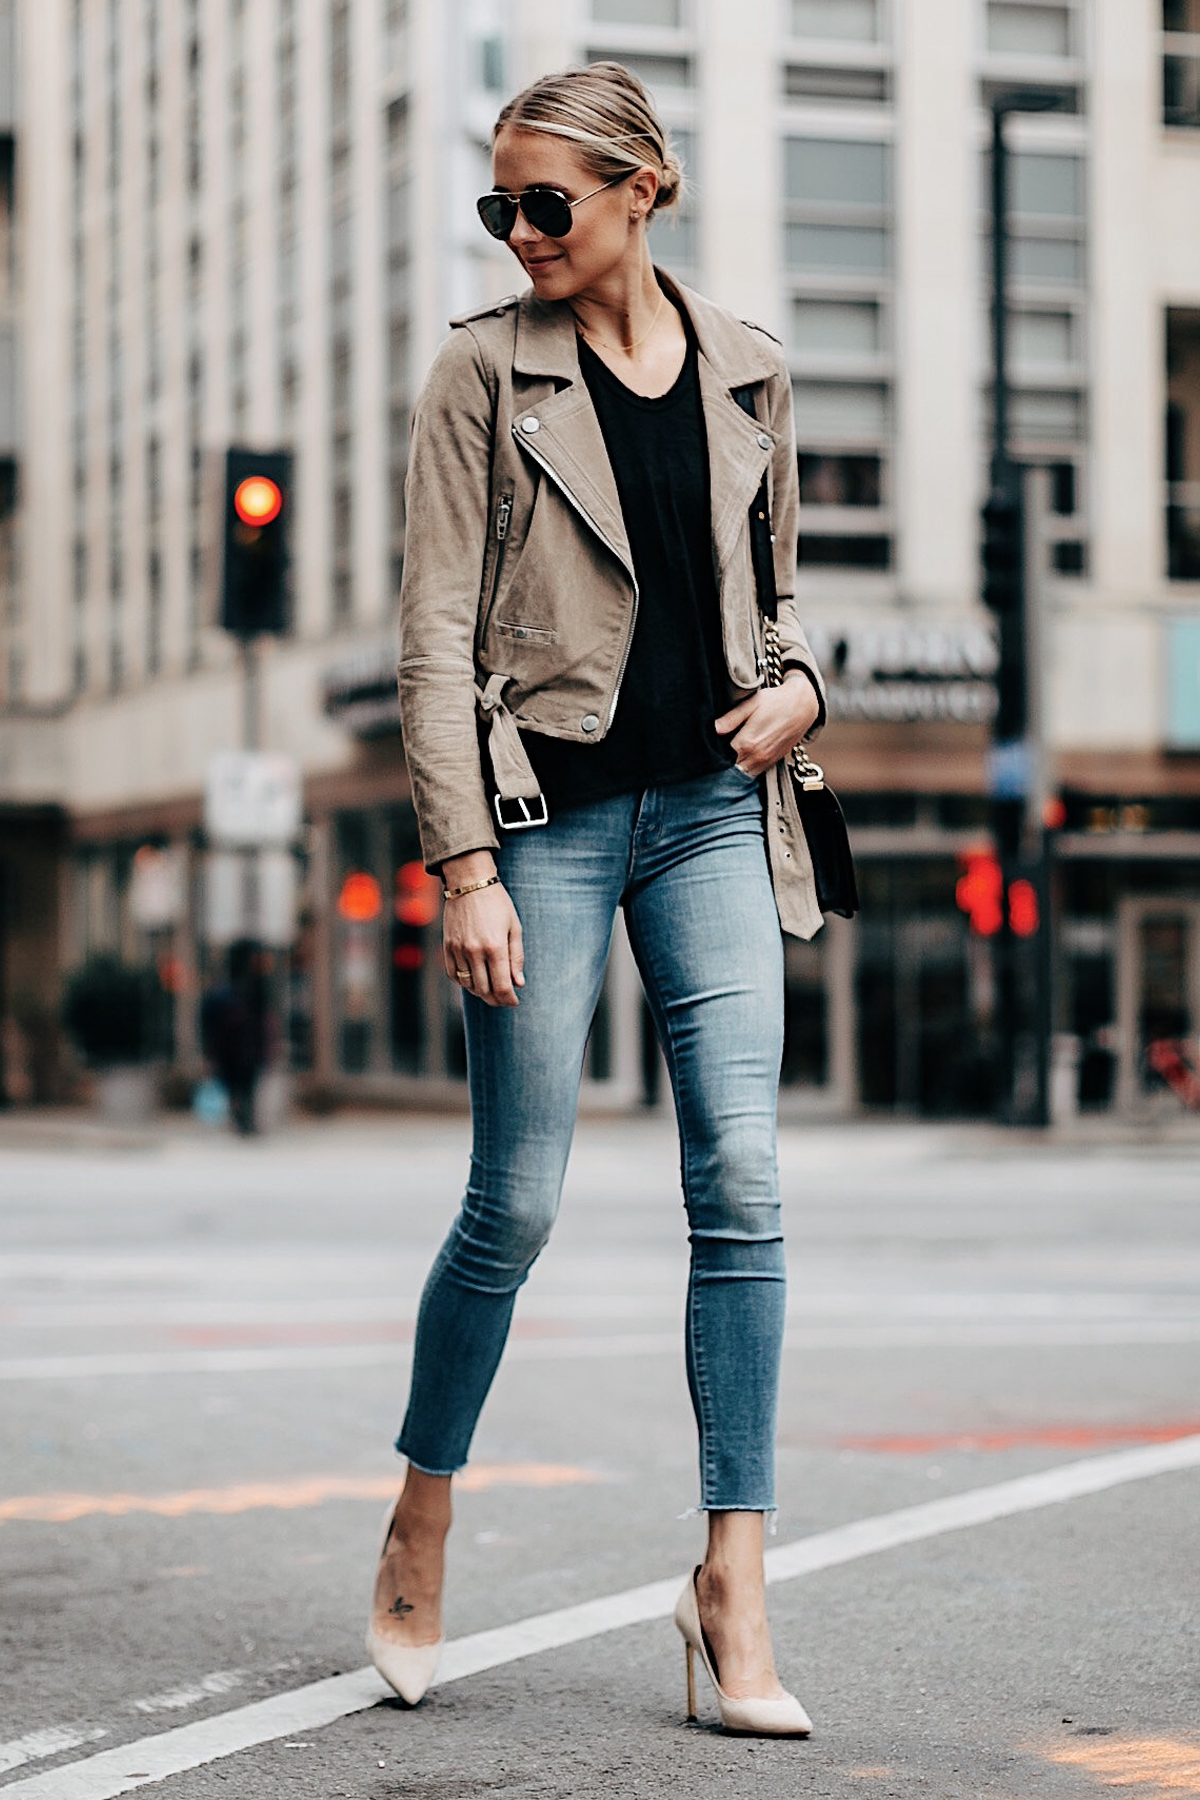 Fashion Jackson Blanknyc Tan Suede Moto Jacket Black Tshirt Mother Denim Jeans Nude Pumps